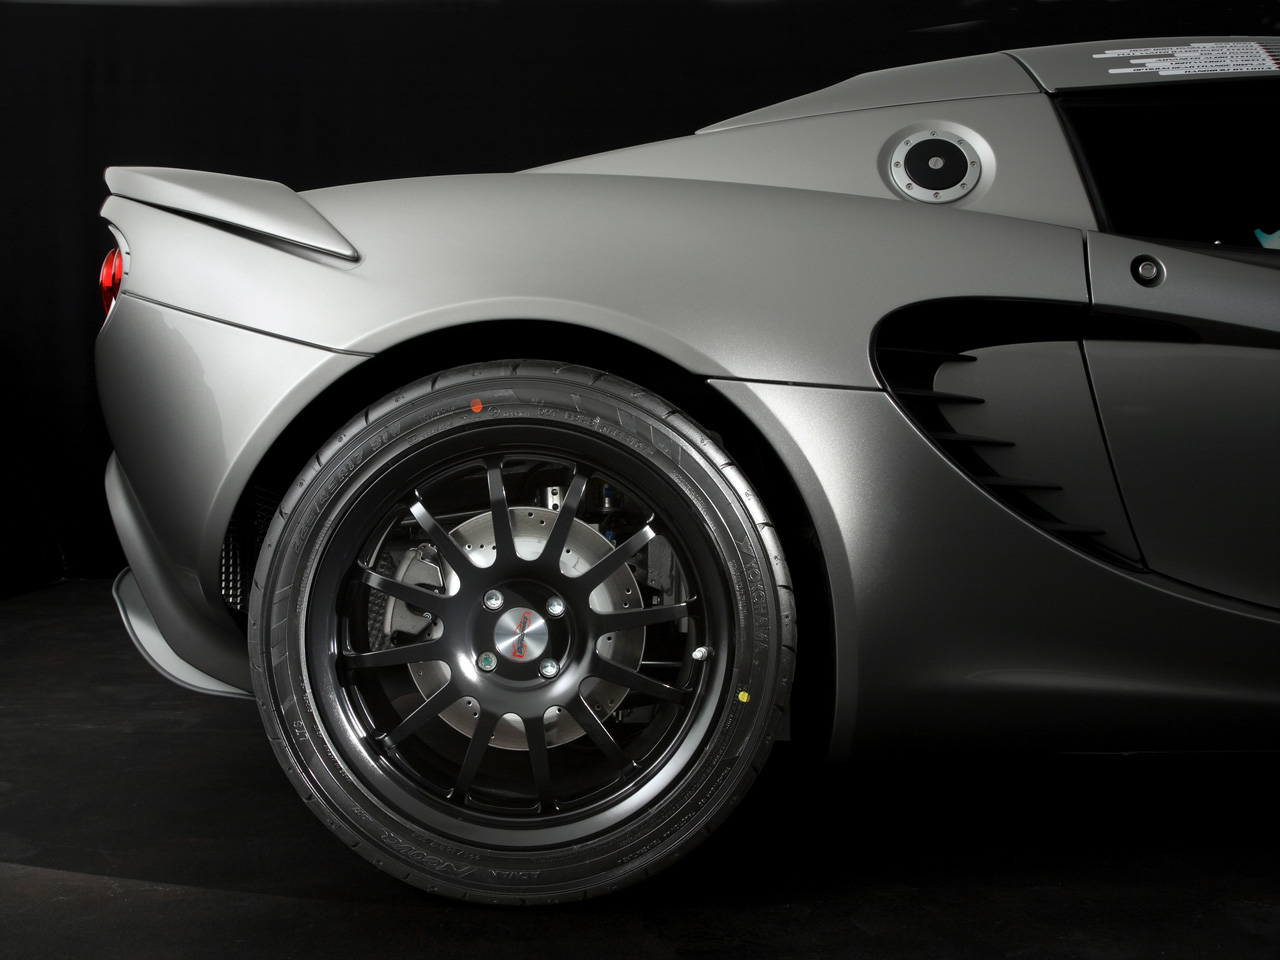 2008-Lotus-Eco-Elise-Rear-Wheel-1280x960.jpg